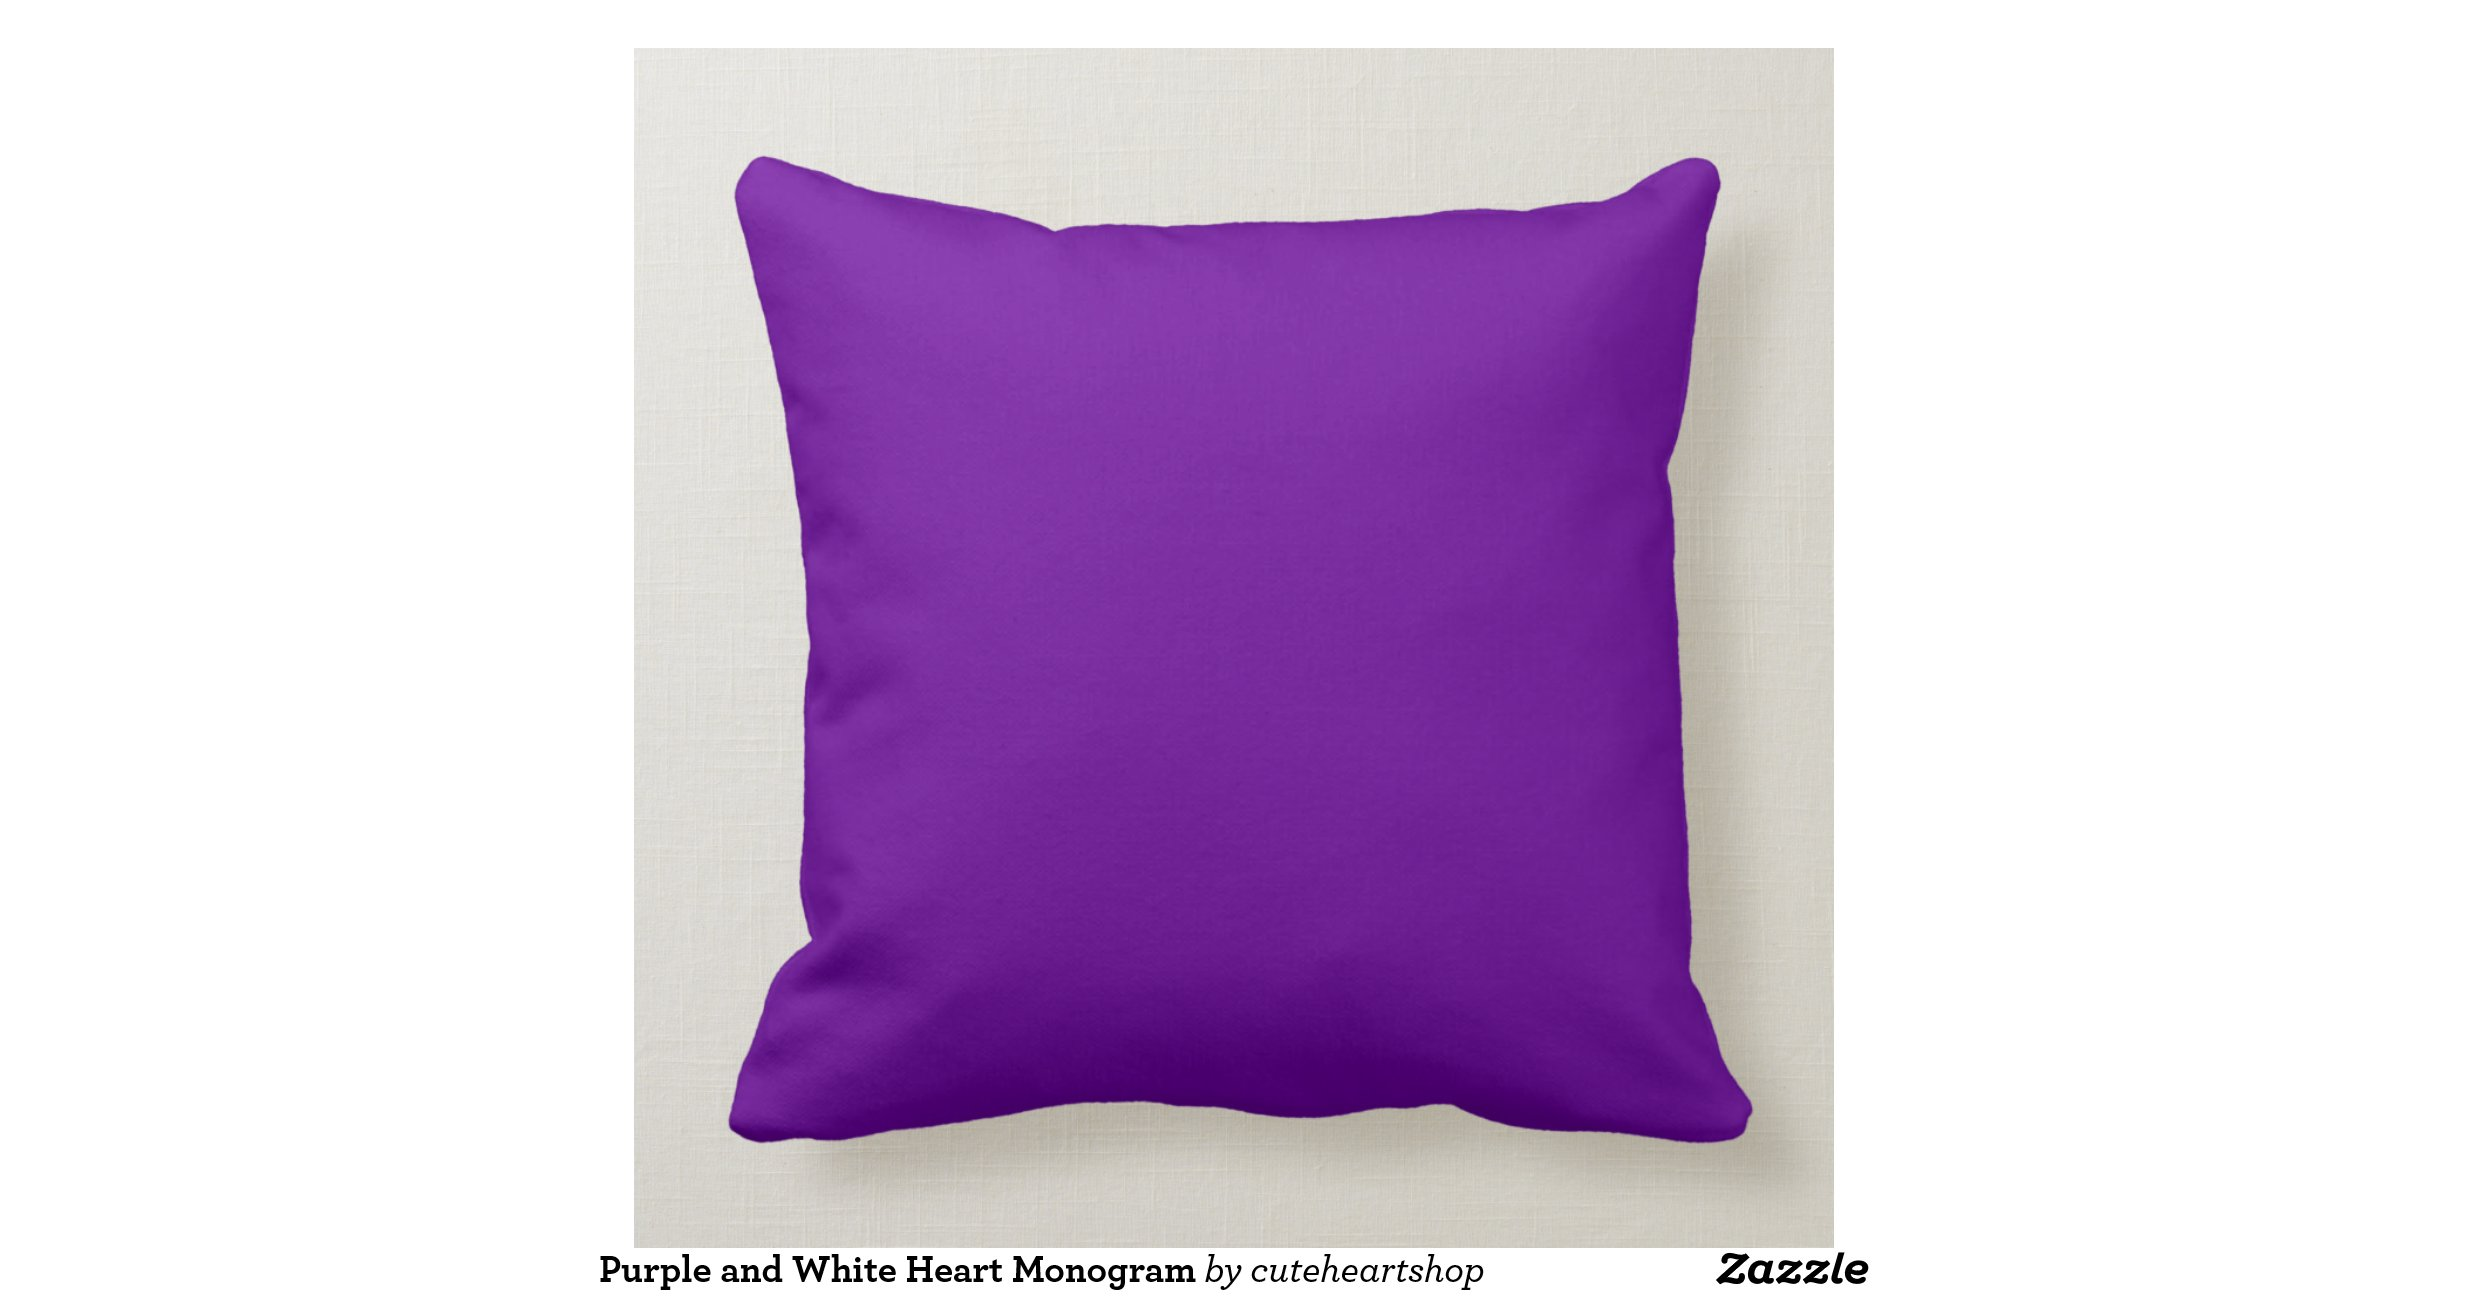 White Heart Throw Pillow : purple_and_white_heart_monogram_throw_pillow-r1e86716625fc4b78b9650f8f9dd6c3de_i5f26_8byvr_1200 ...